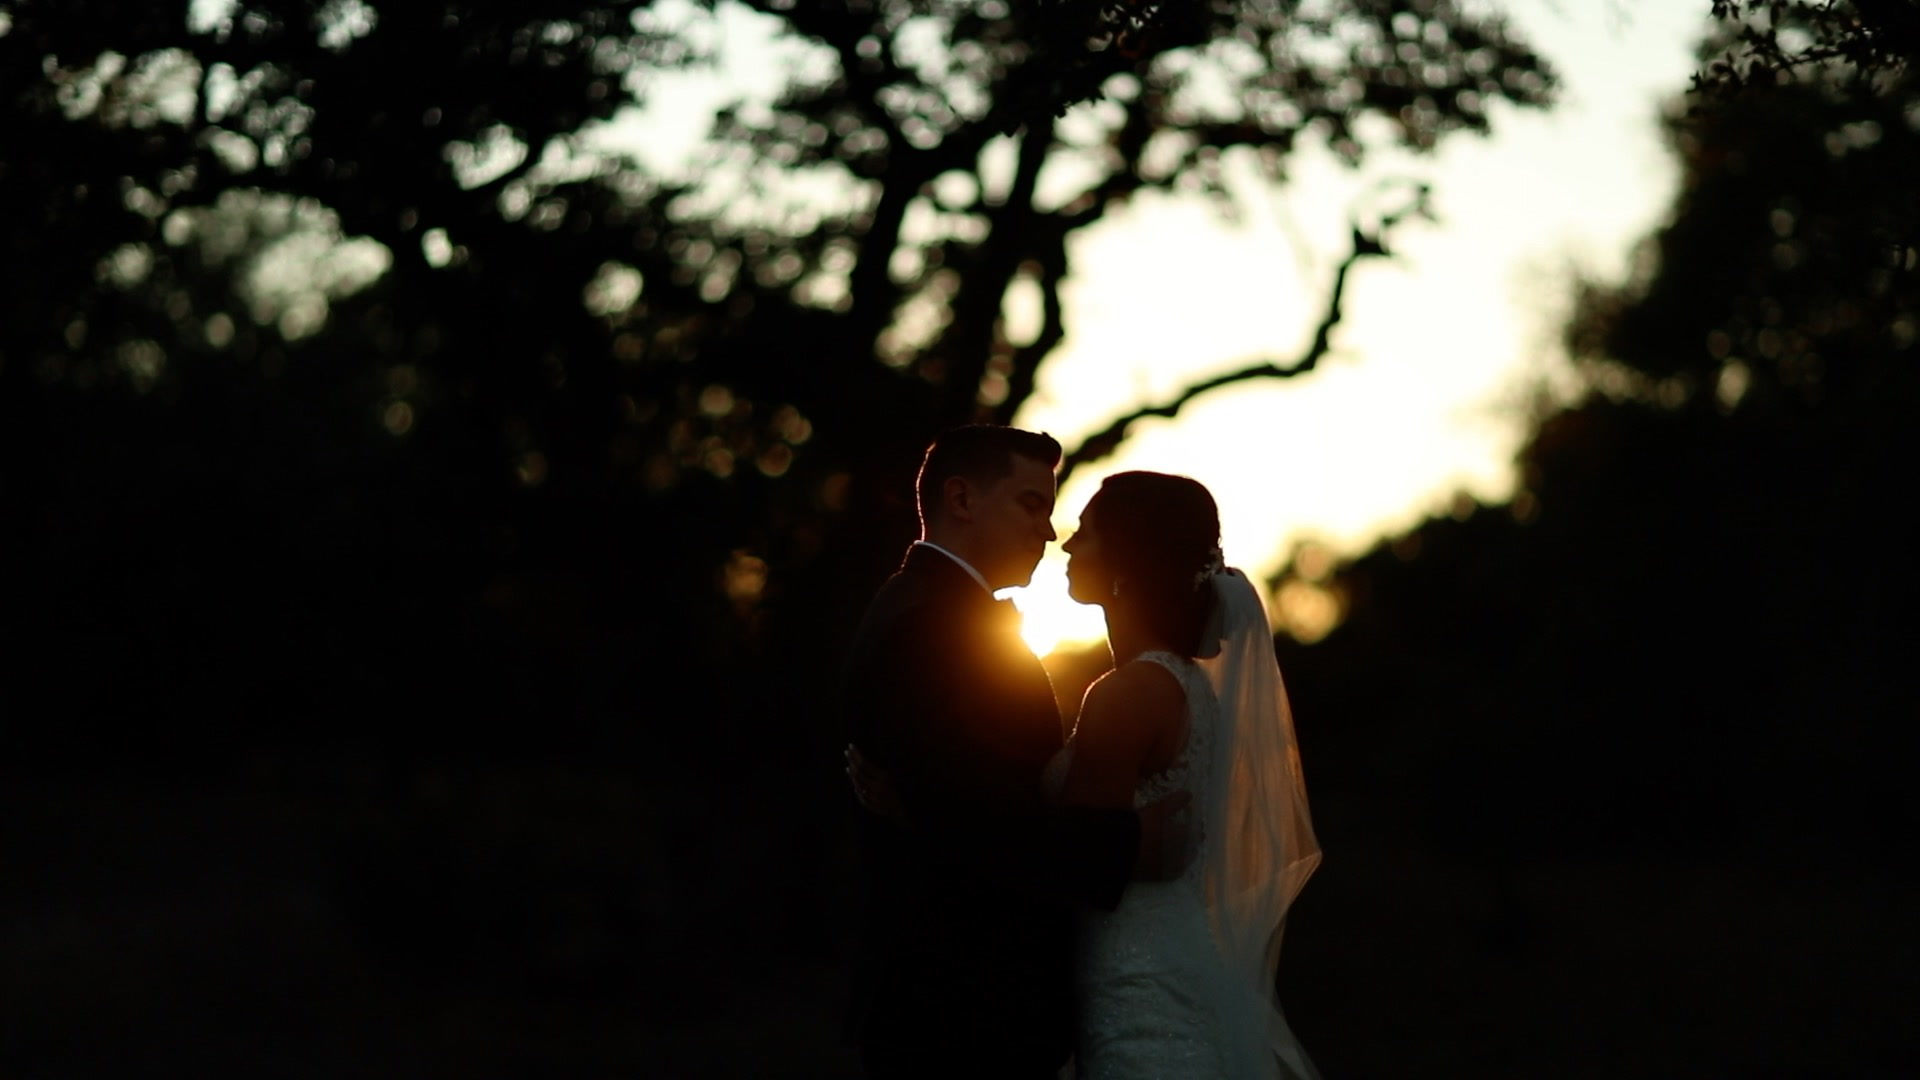 Mary + Eric | Spring Branch, Texas | Park 31